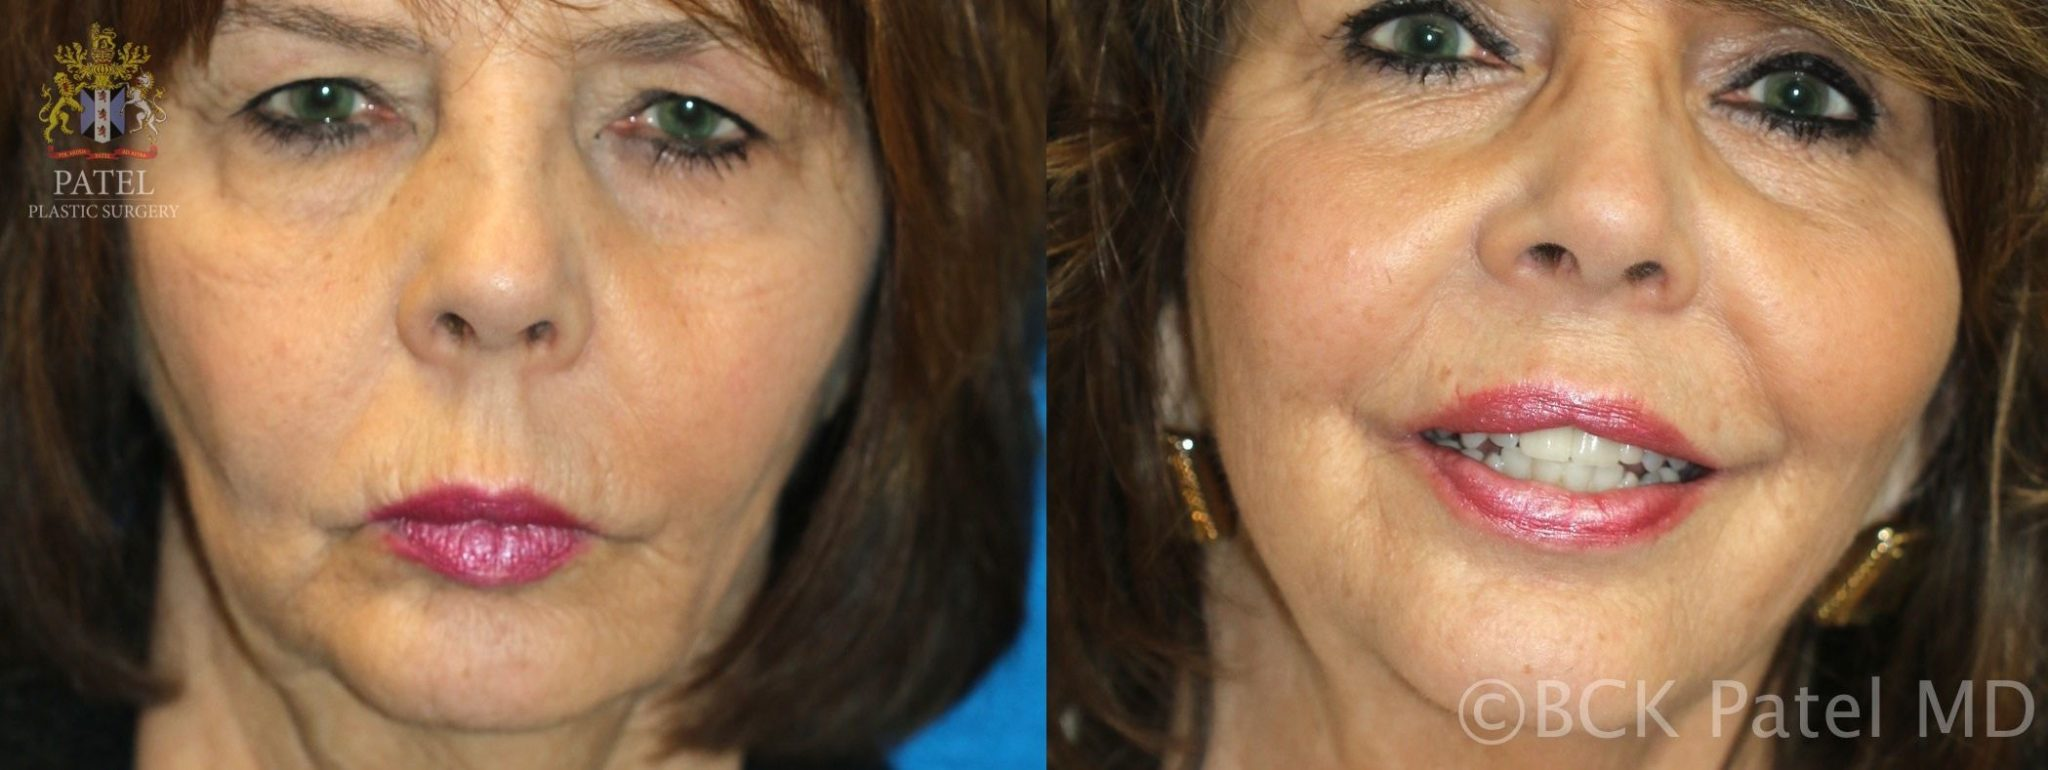 englishsurgeon.com. Photos show improvement in the upper lip length and lines as well as fullness by Dr. BCK Patel MD, FRCS, Salt Lake City, St George